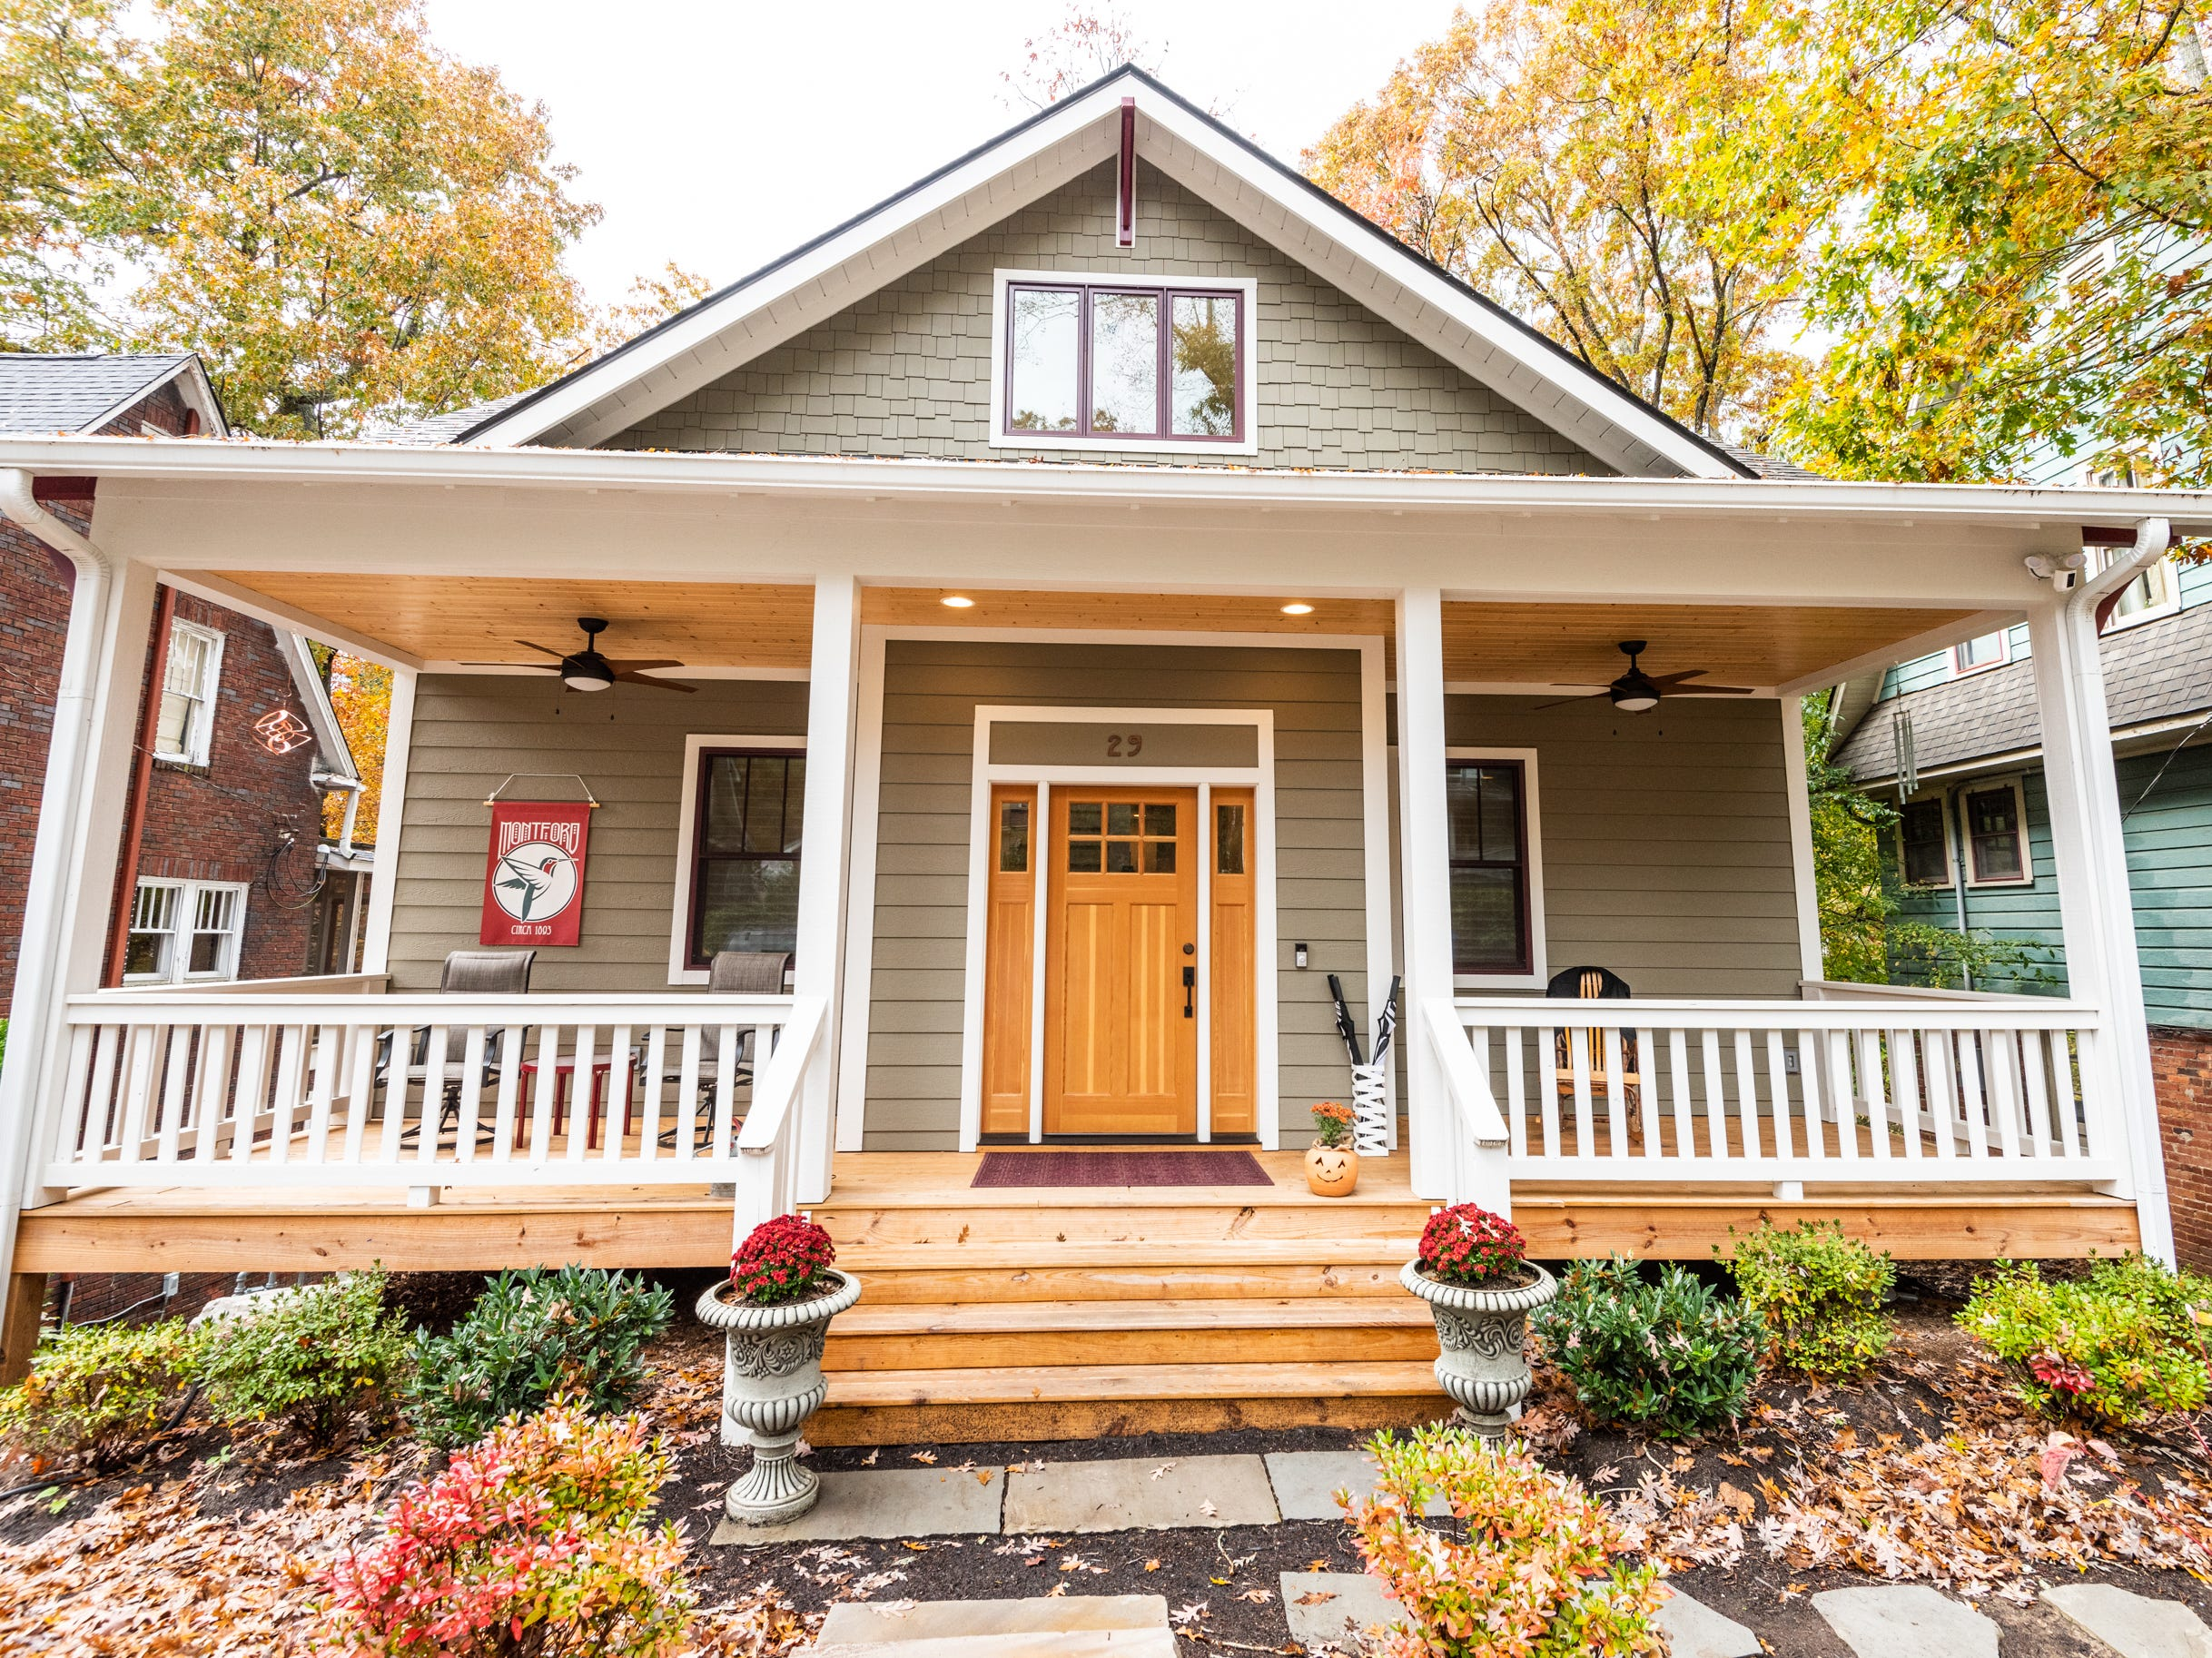 Home of the Week: Sneak peek of Asheville's Montford tour of homes